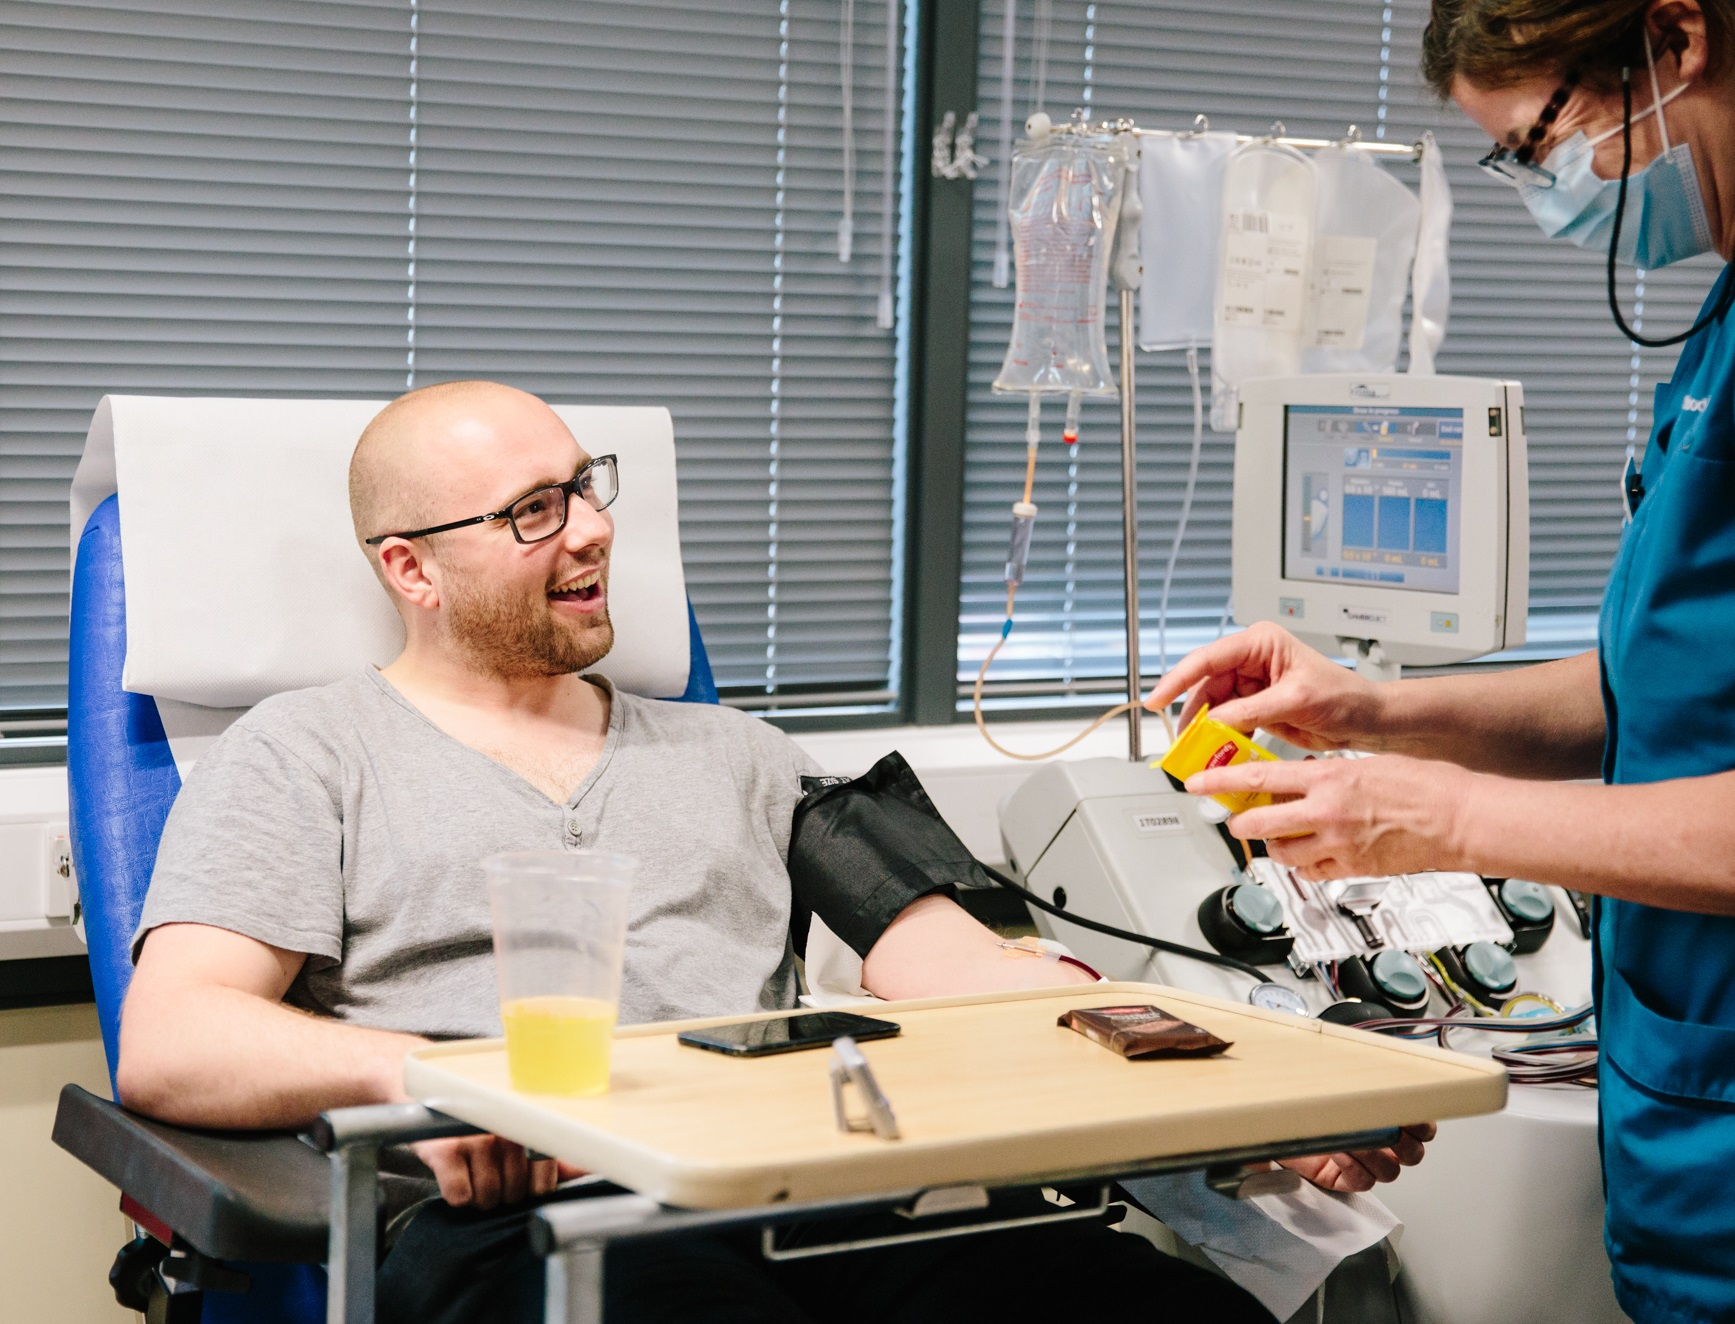 A donor giving plasma